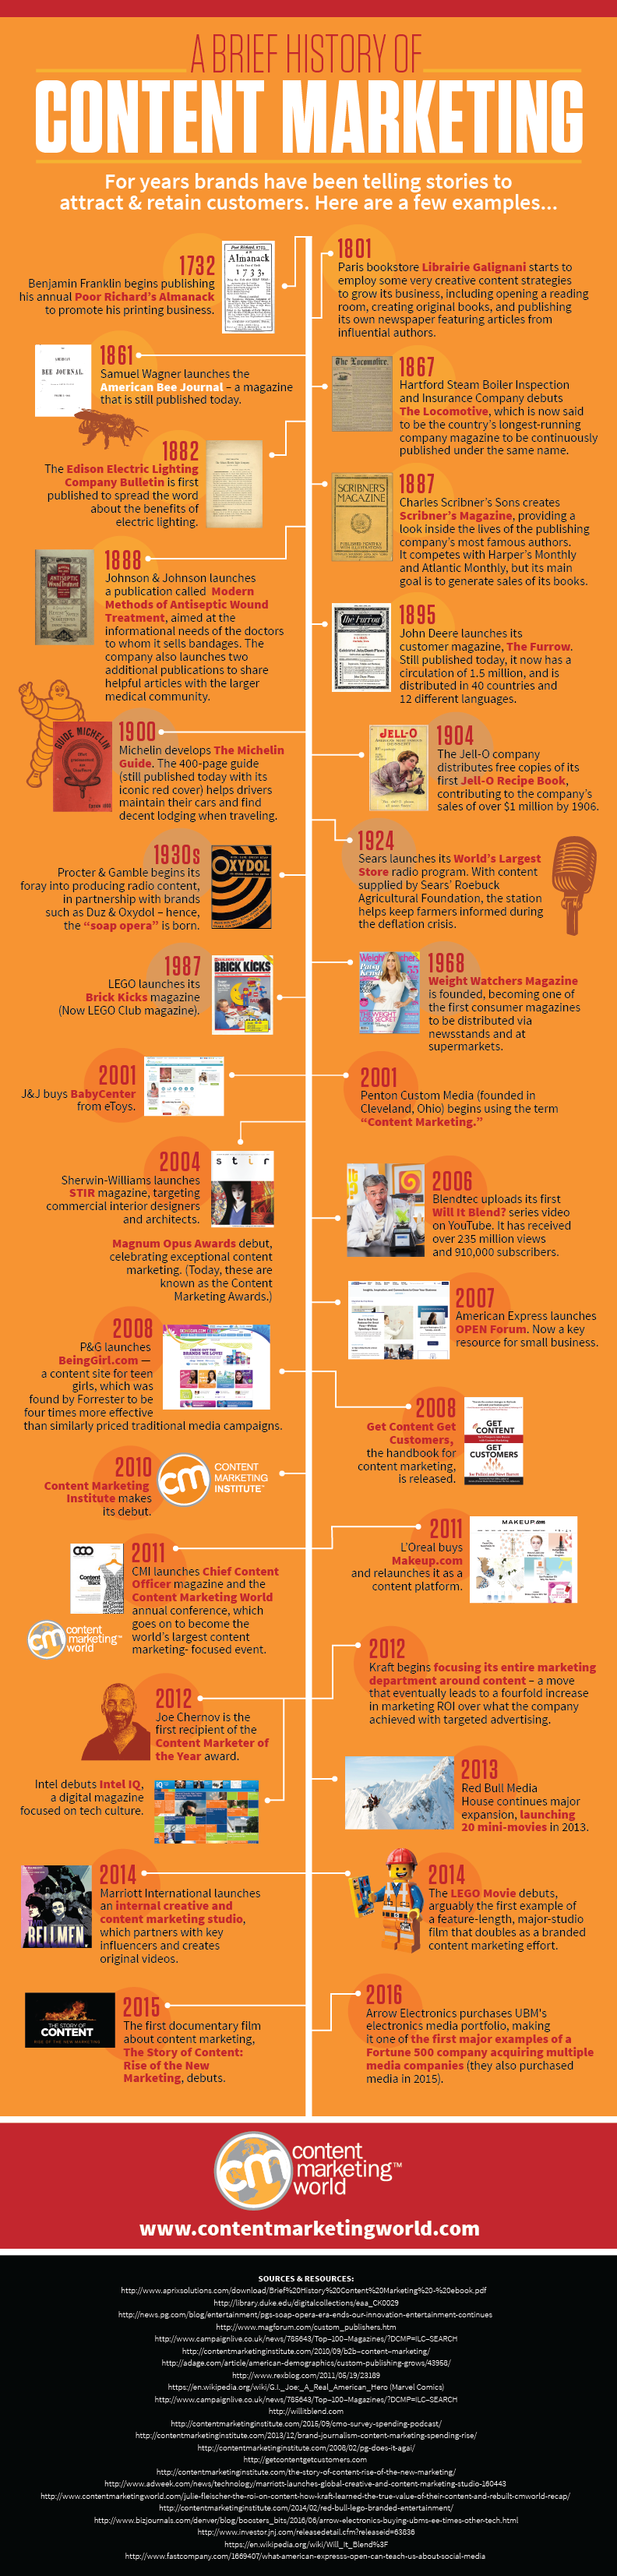 History-of-Content-Marketing-Infographic-2016_FINAL